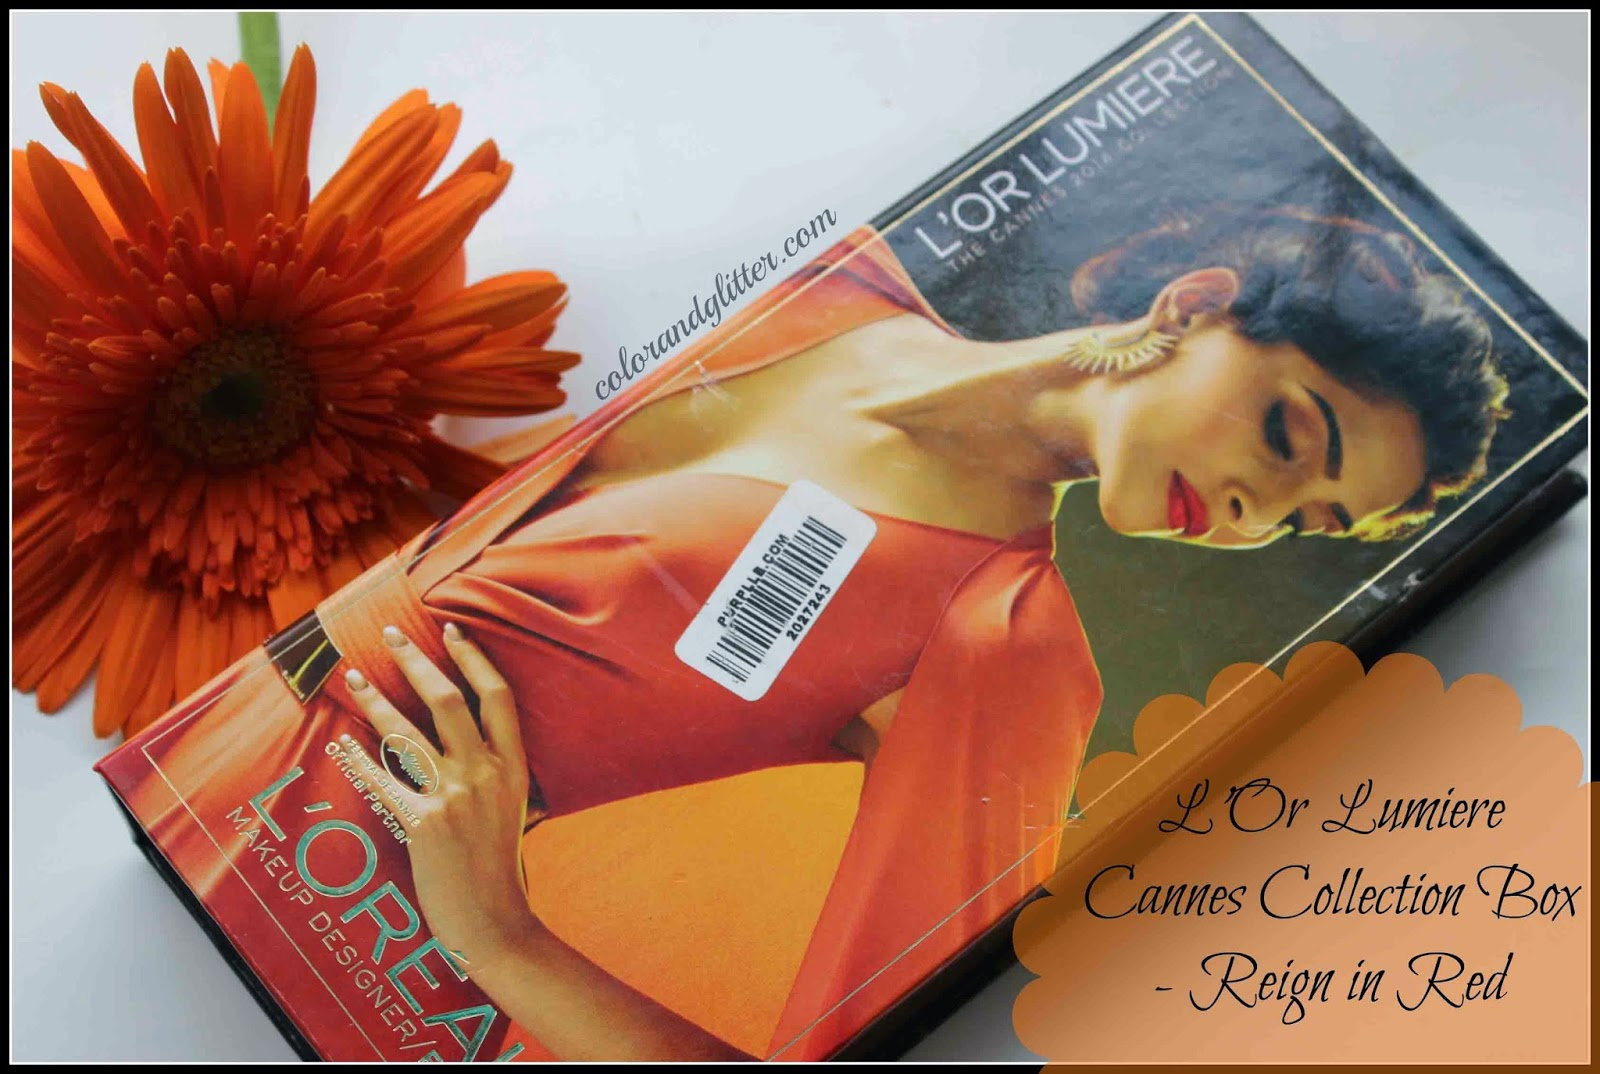 L'Oreal Paris L'Or Lumiere Cannes Collection Box - Reign in Red